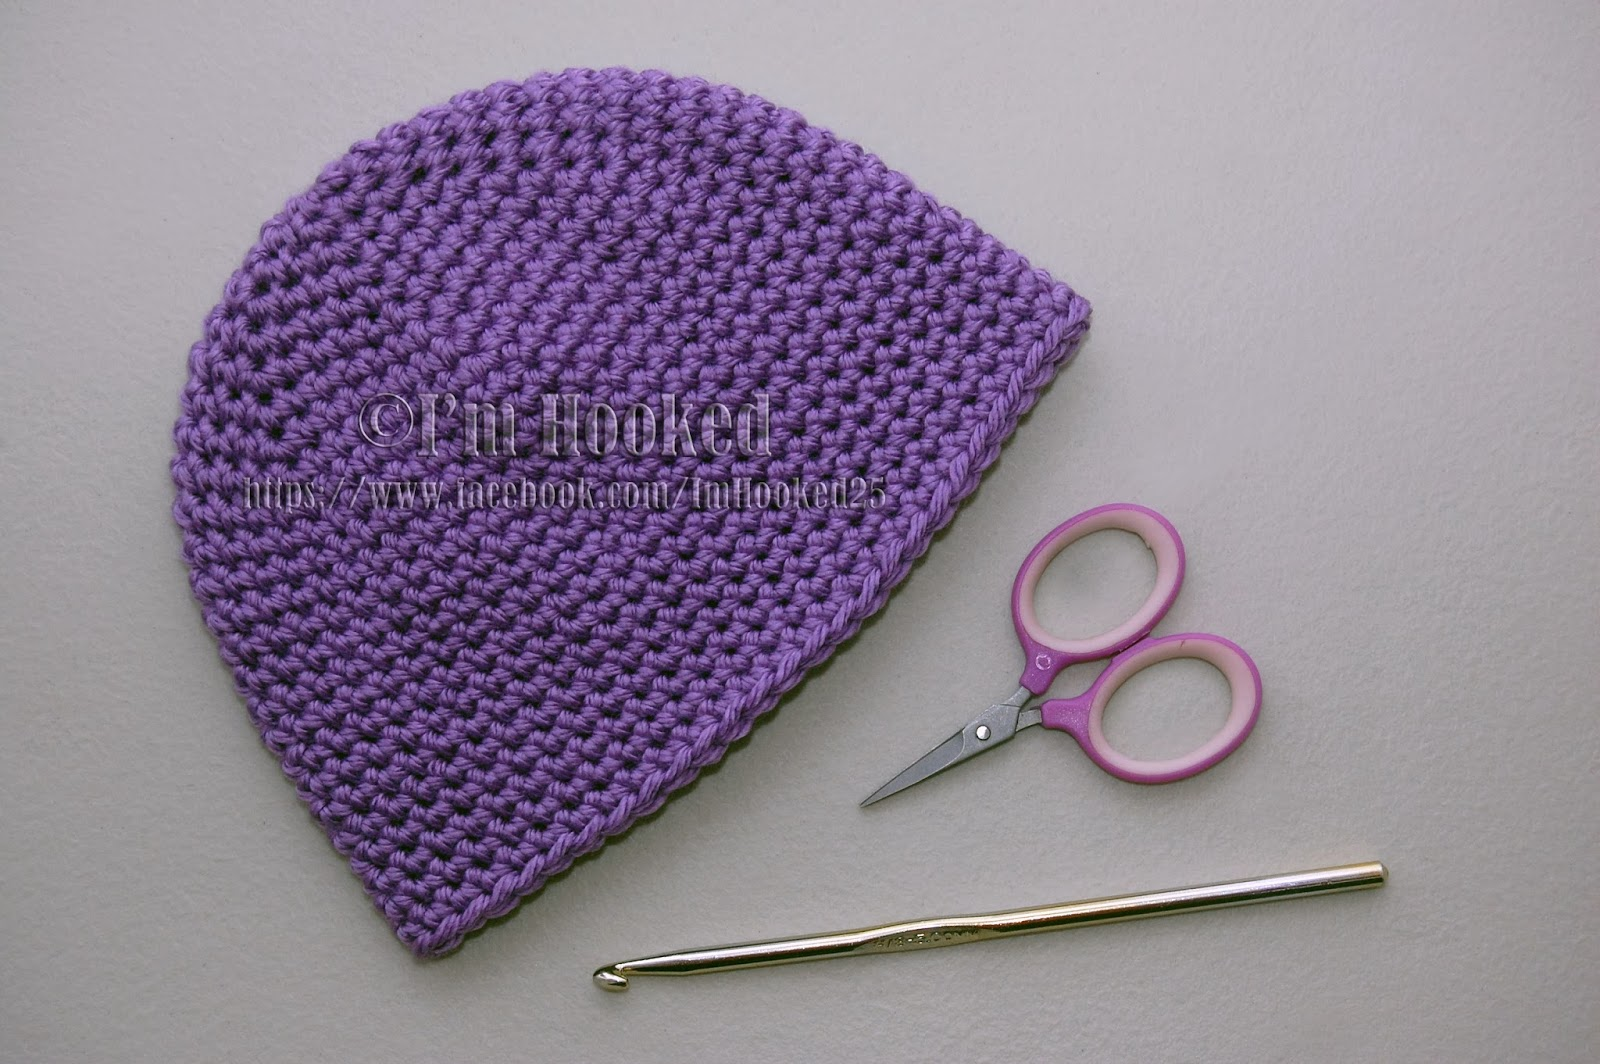 How To Crochet Basics : Free Crochet Pattern: Basic Beanie (Single Crochet)